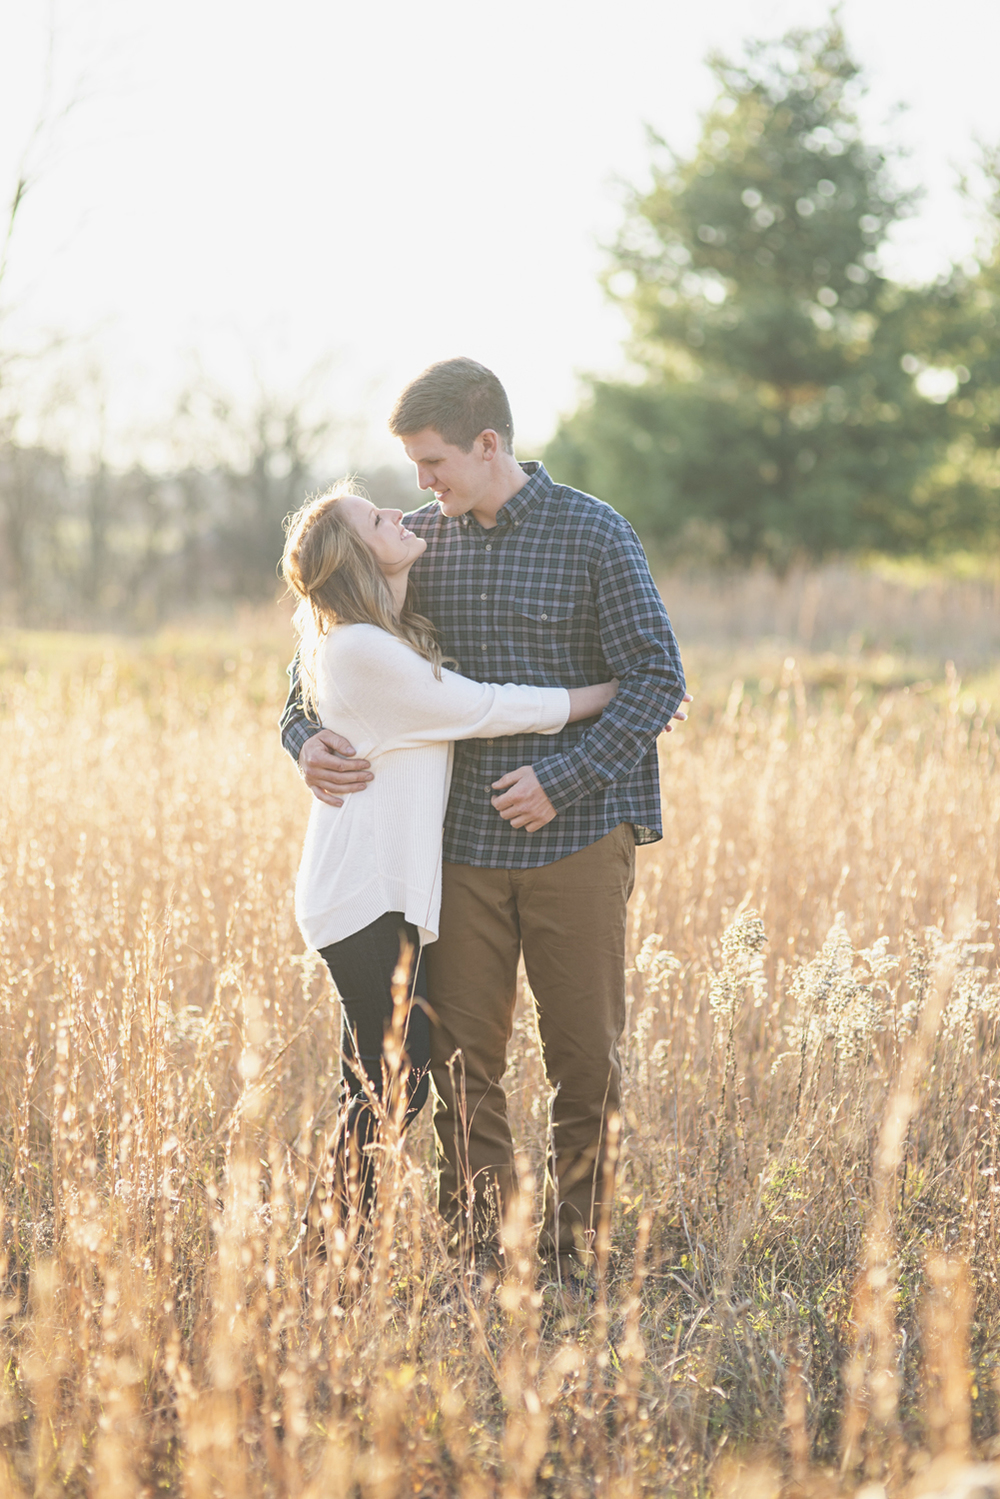 Destination Northern Virginia Engagement Session | Casual J Crew engagement pictures in field with golden light